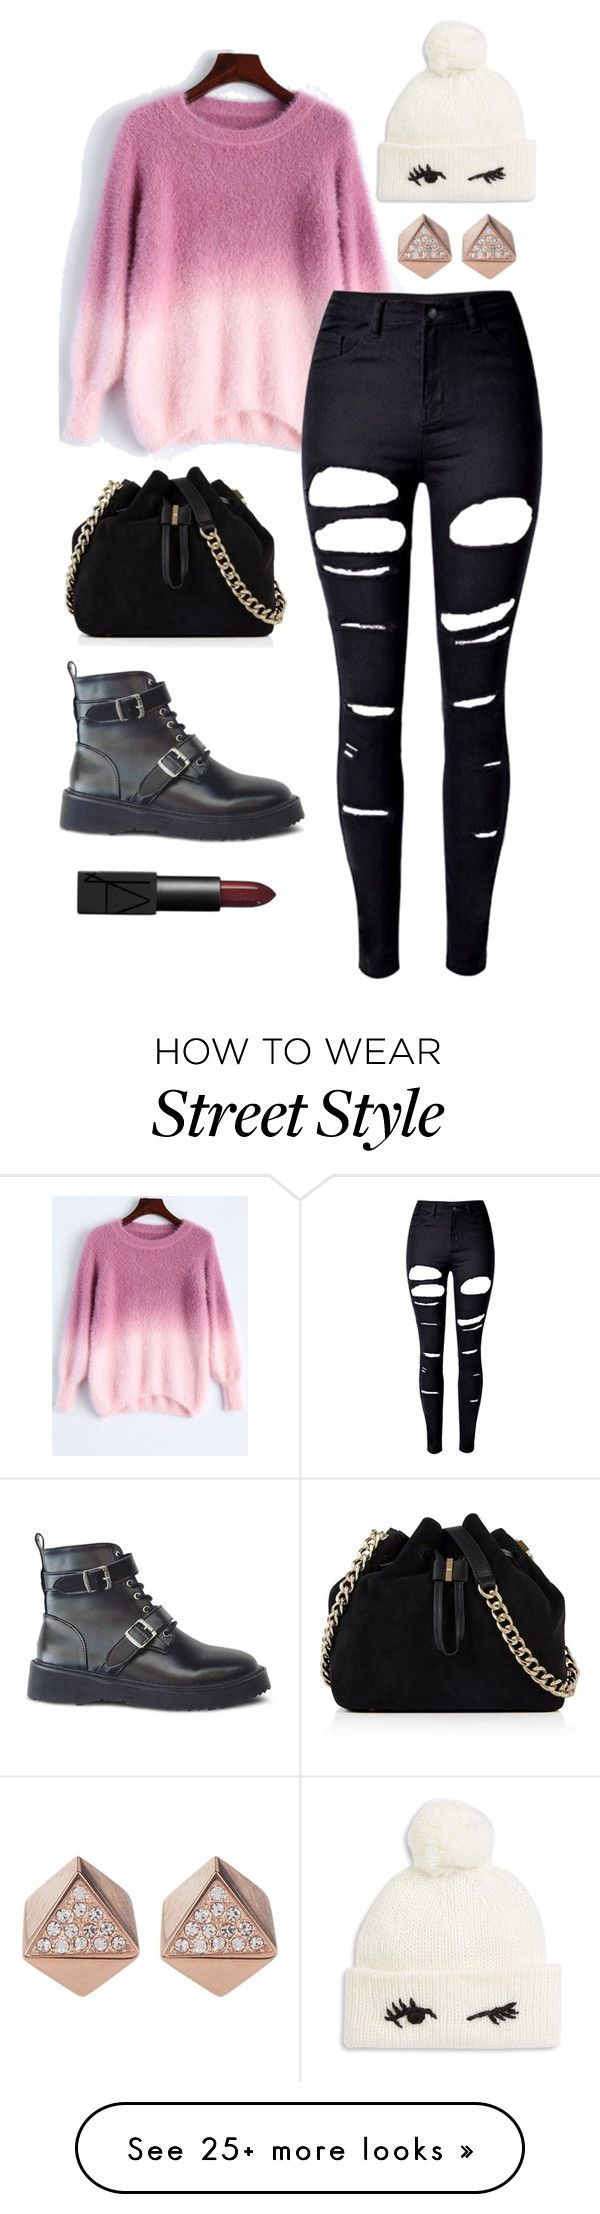 """WHO really I AM"" by jamie-tiu on Polyvore featuring WithChic, Karen Millen, Kate Spade, FOSSIL and NARS Cosmetics"